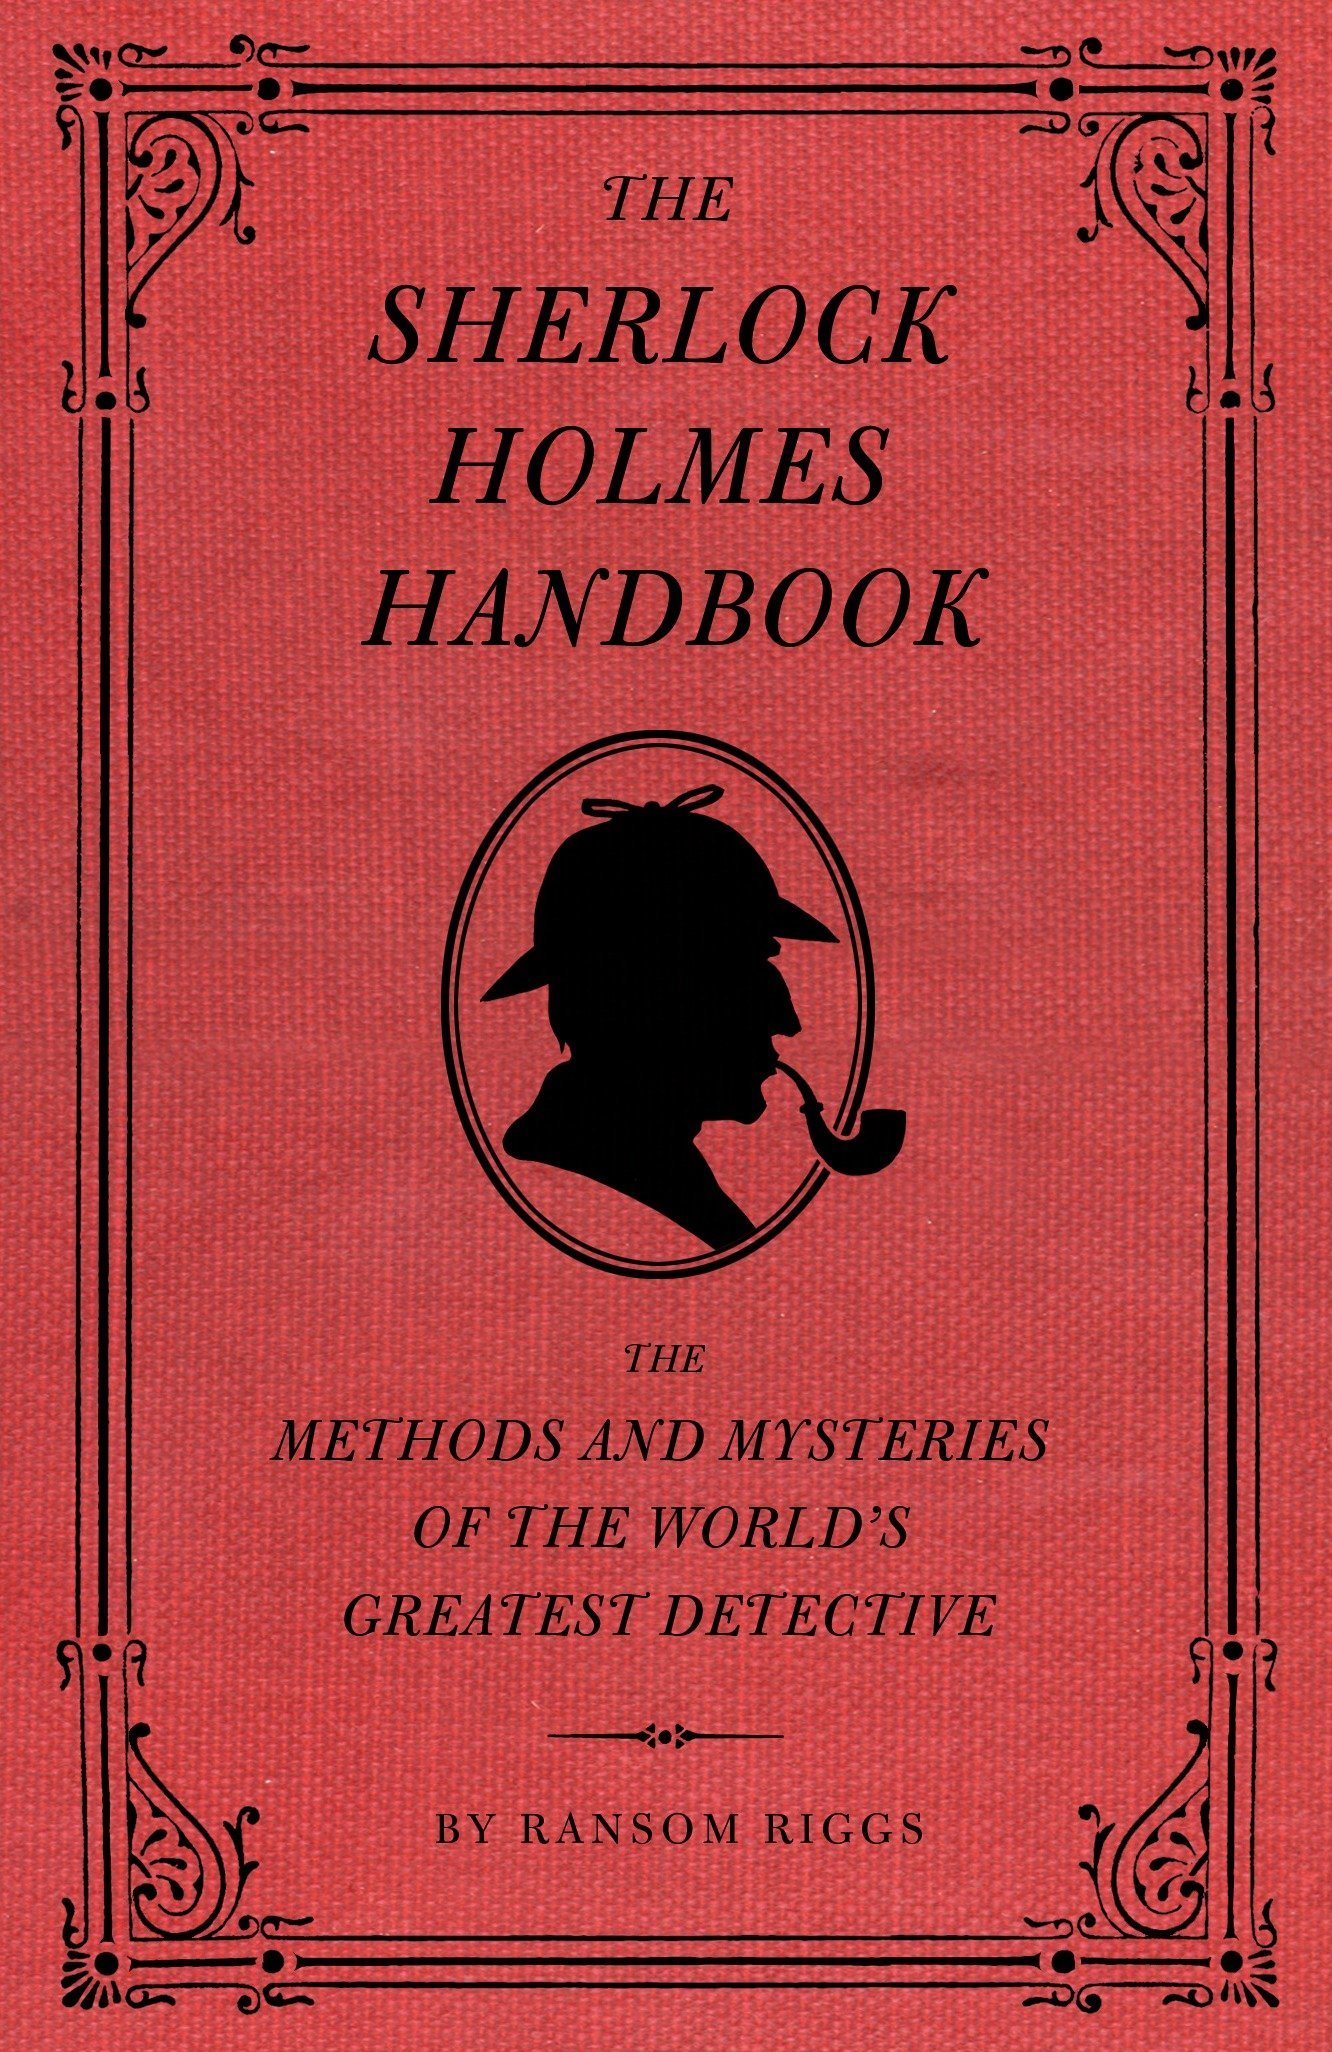 Amazon com: The Sherlock Holmes Handbook: The Methods and Mysteries